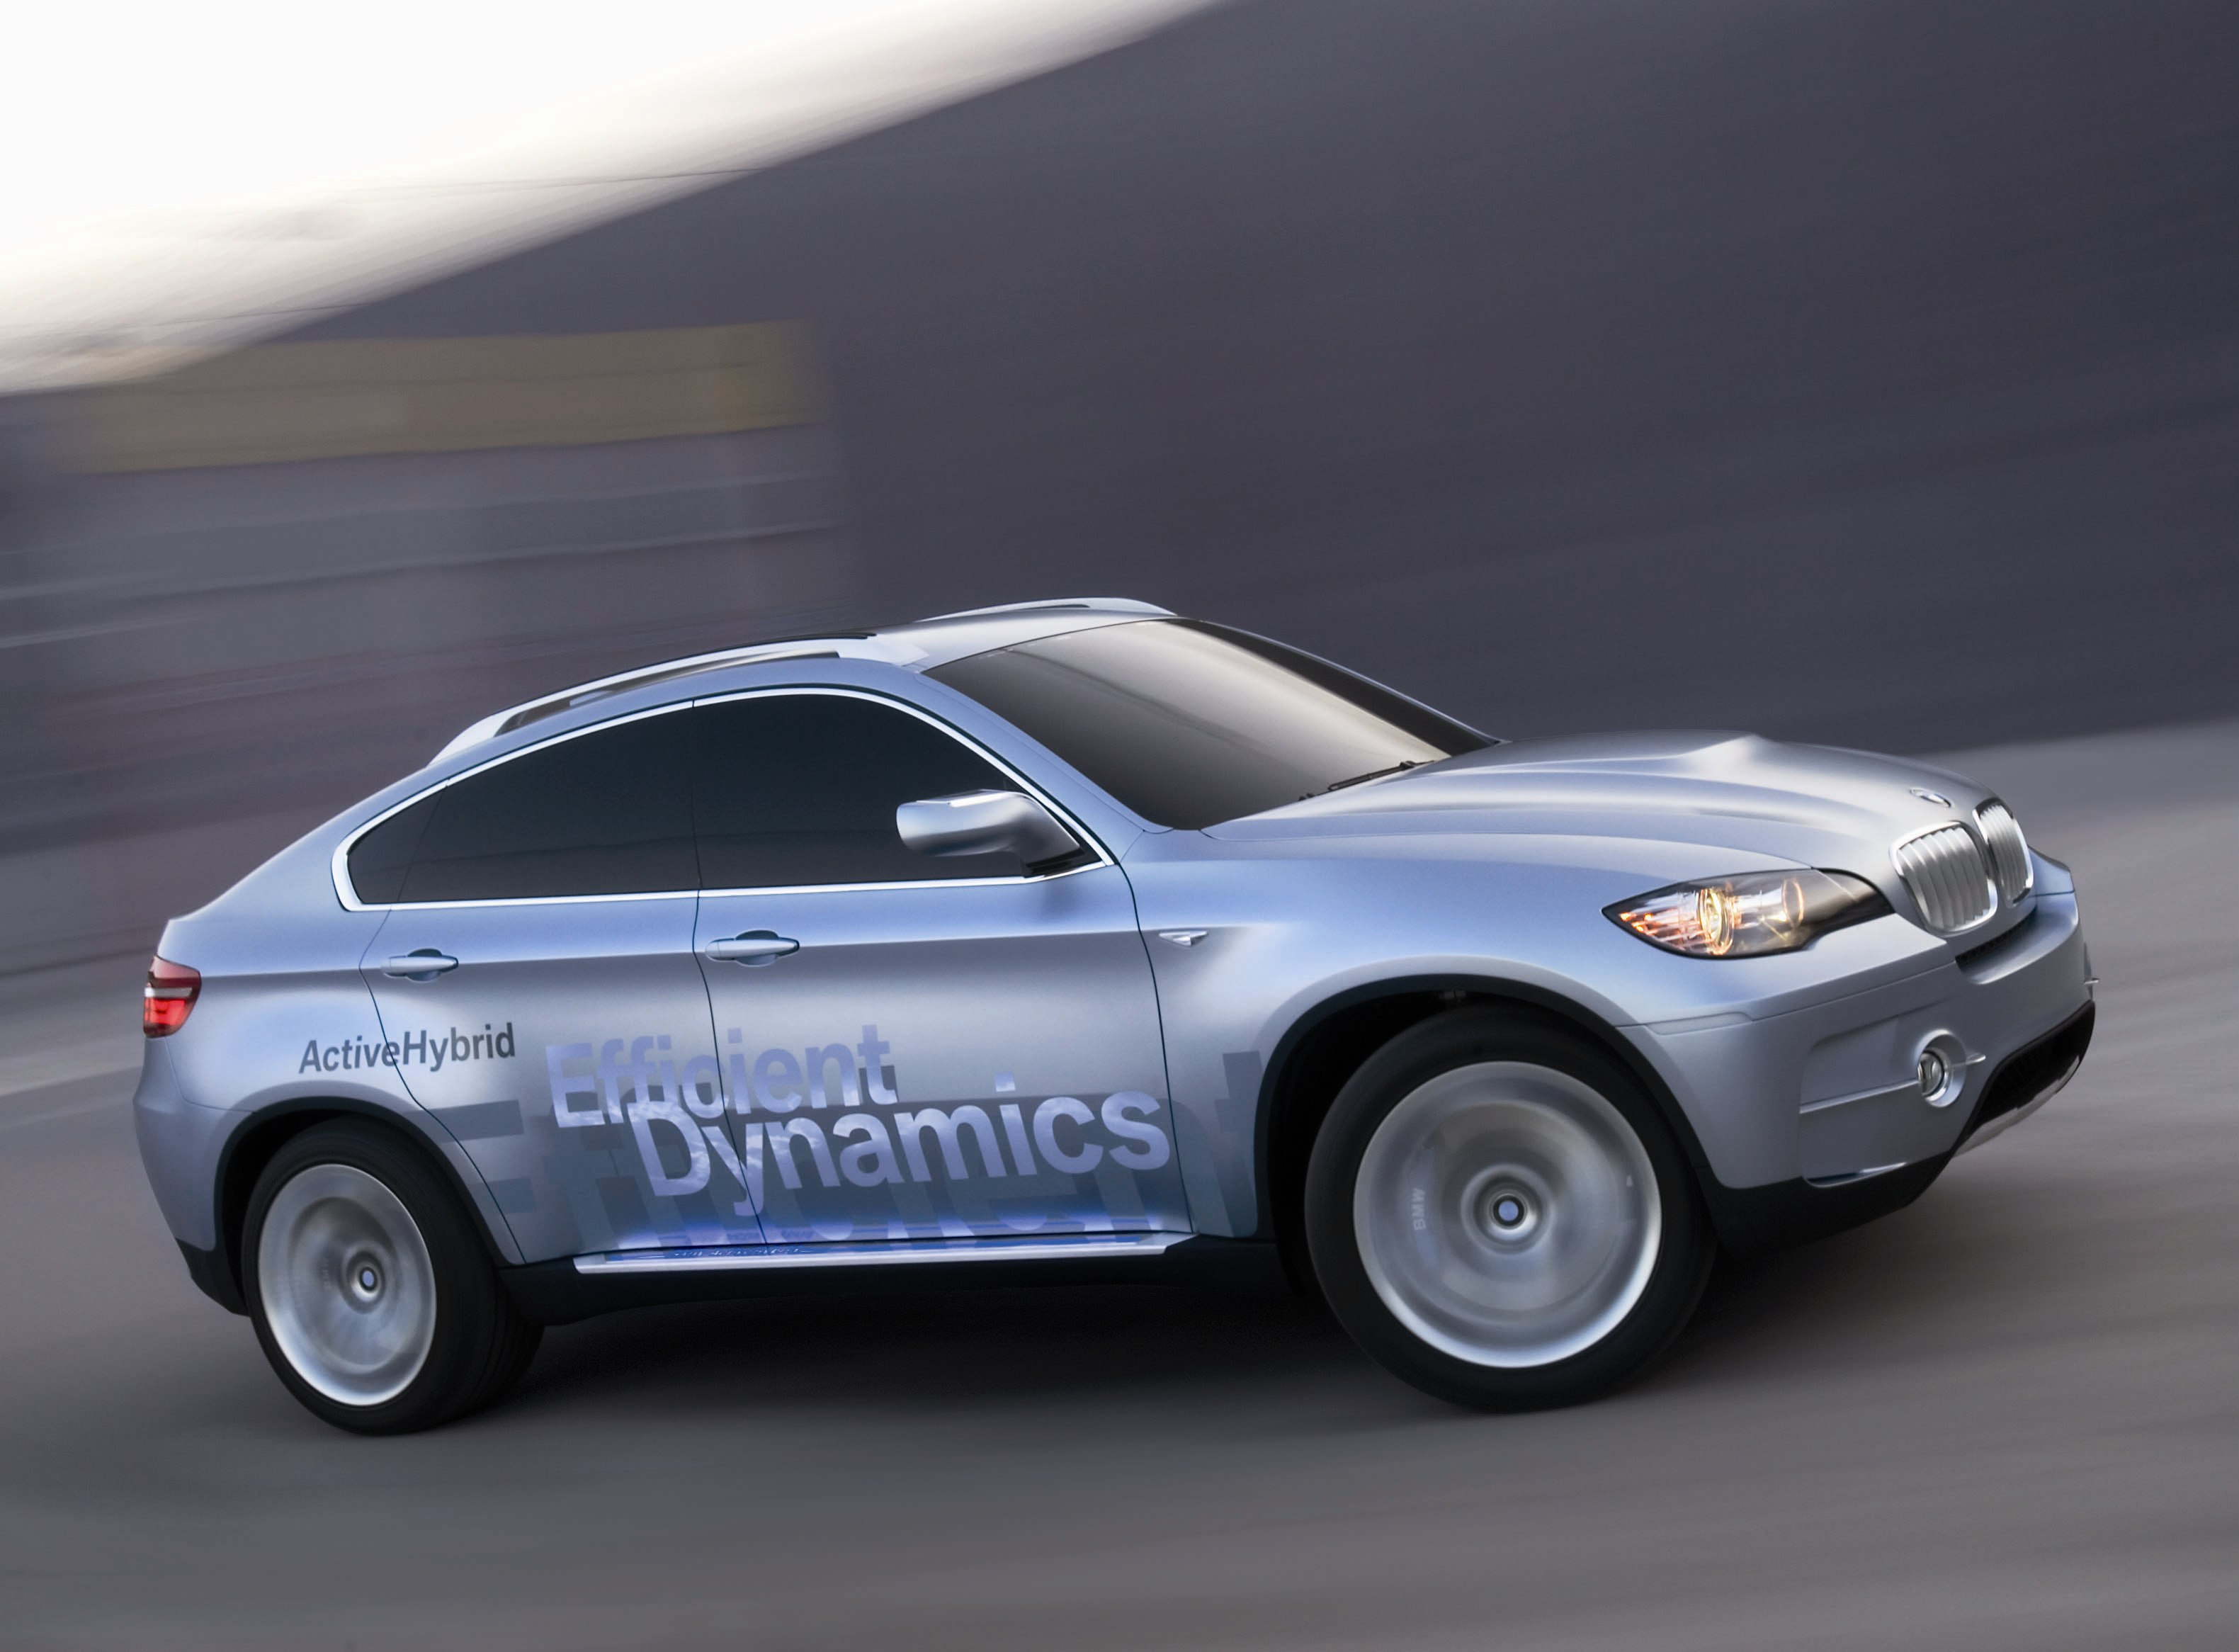 2008 Detroit Auto Show: BMW Concept X6 ActiveHybrid Revealed ...